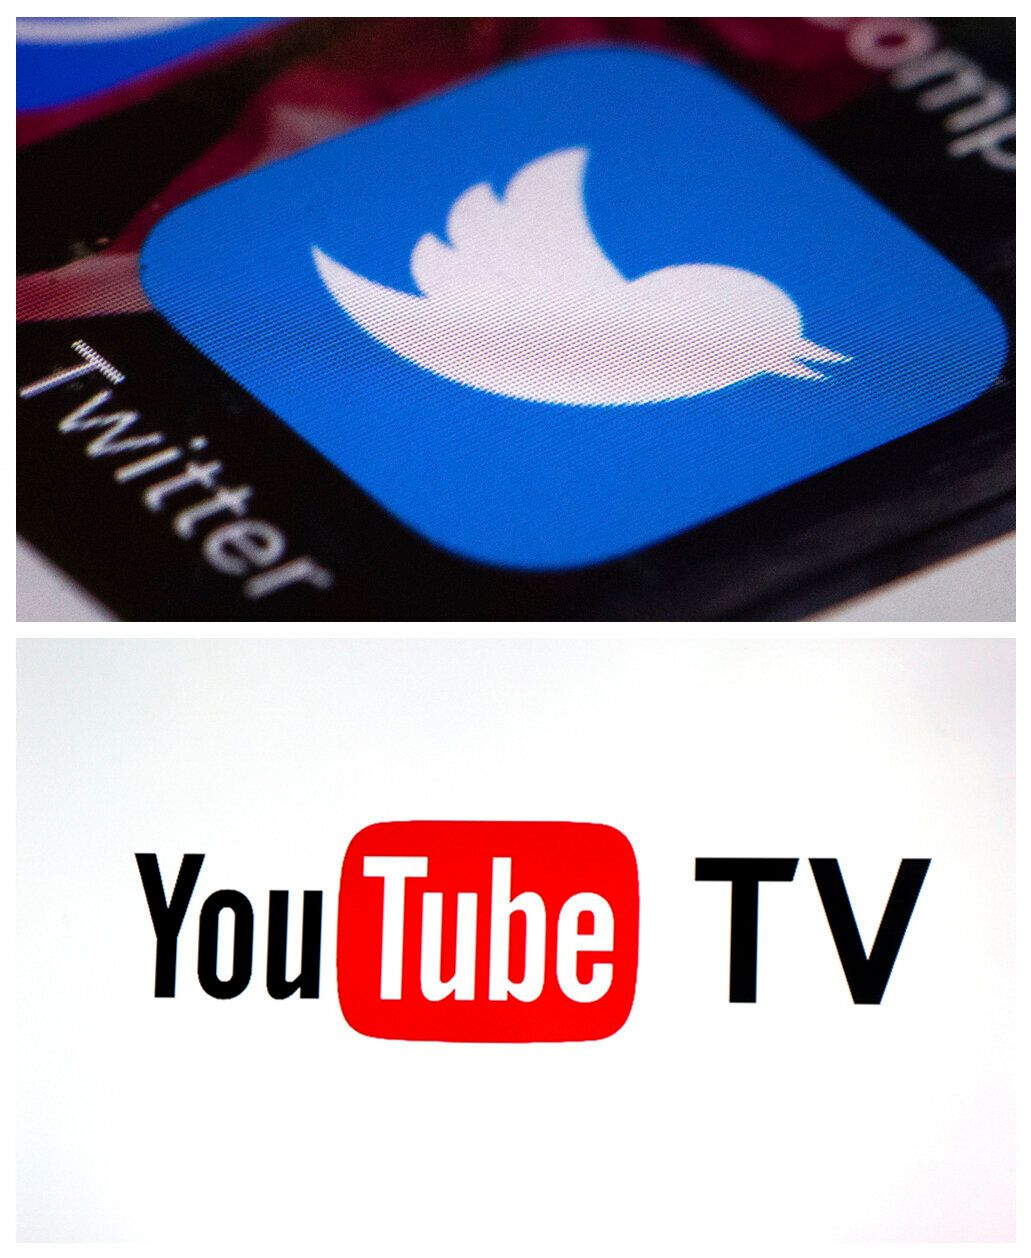 This file photo combo of images shows the Twitter app and YouTube TV logo. Twitter CEO Jack Dorsey is asking for help improving the openness and civility of conversation on Twitter, saying the company failed to prevent misinformation, echo chambers and abuse of its global messaging service. (AP Photo)